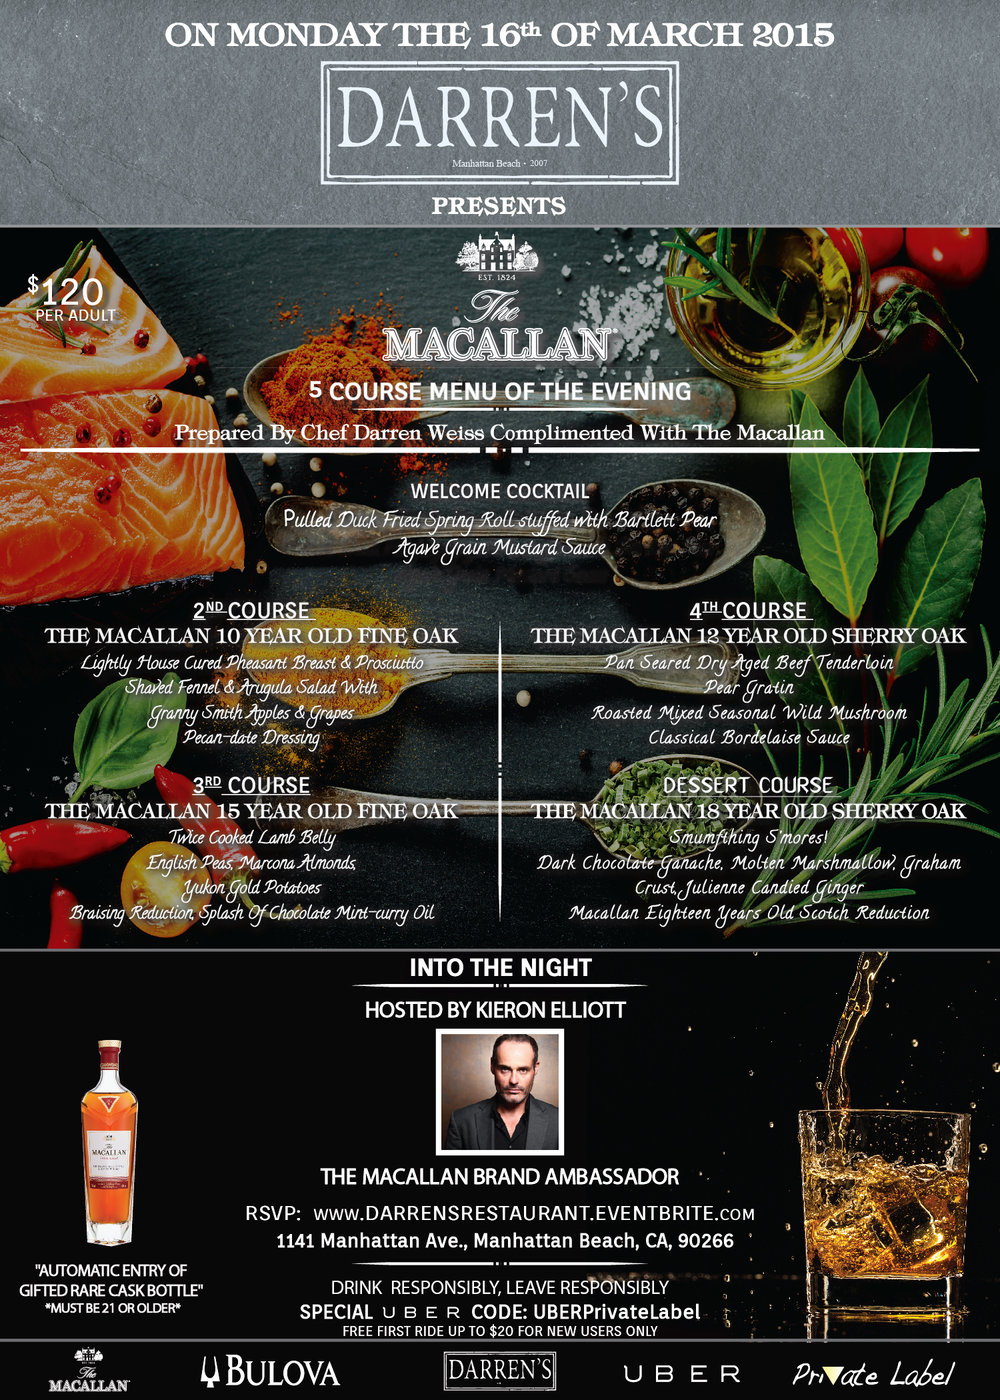 The Macallan 5 Course Menu of The Evening 2015   By Colure and Diamond